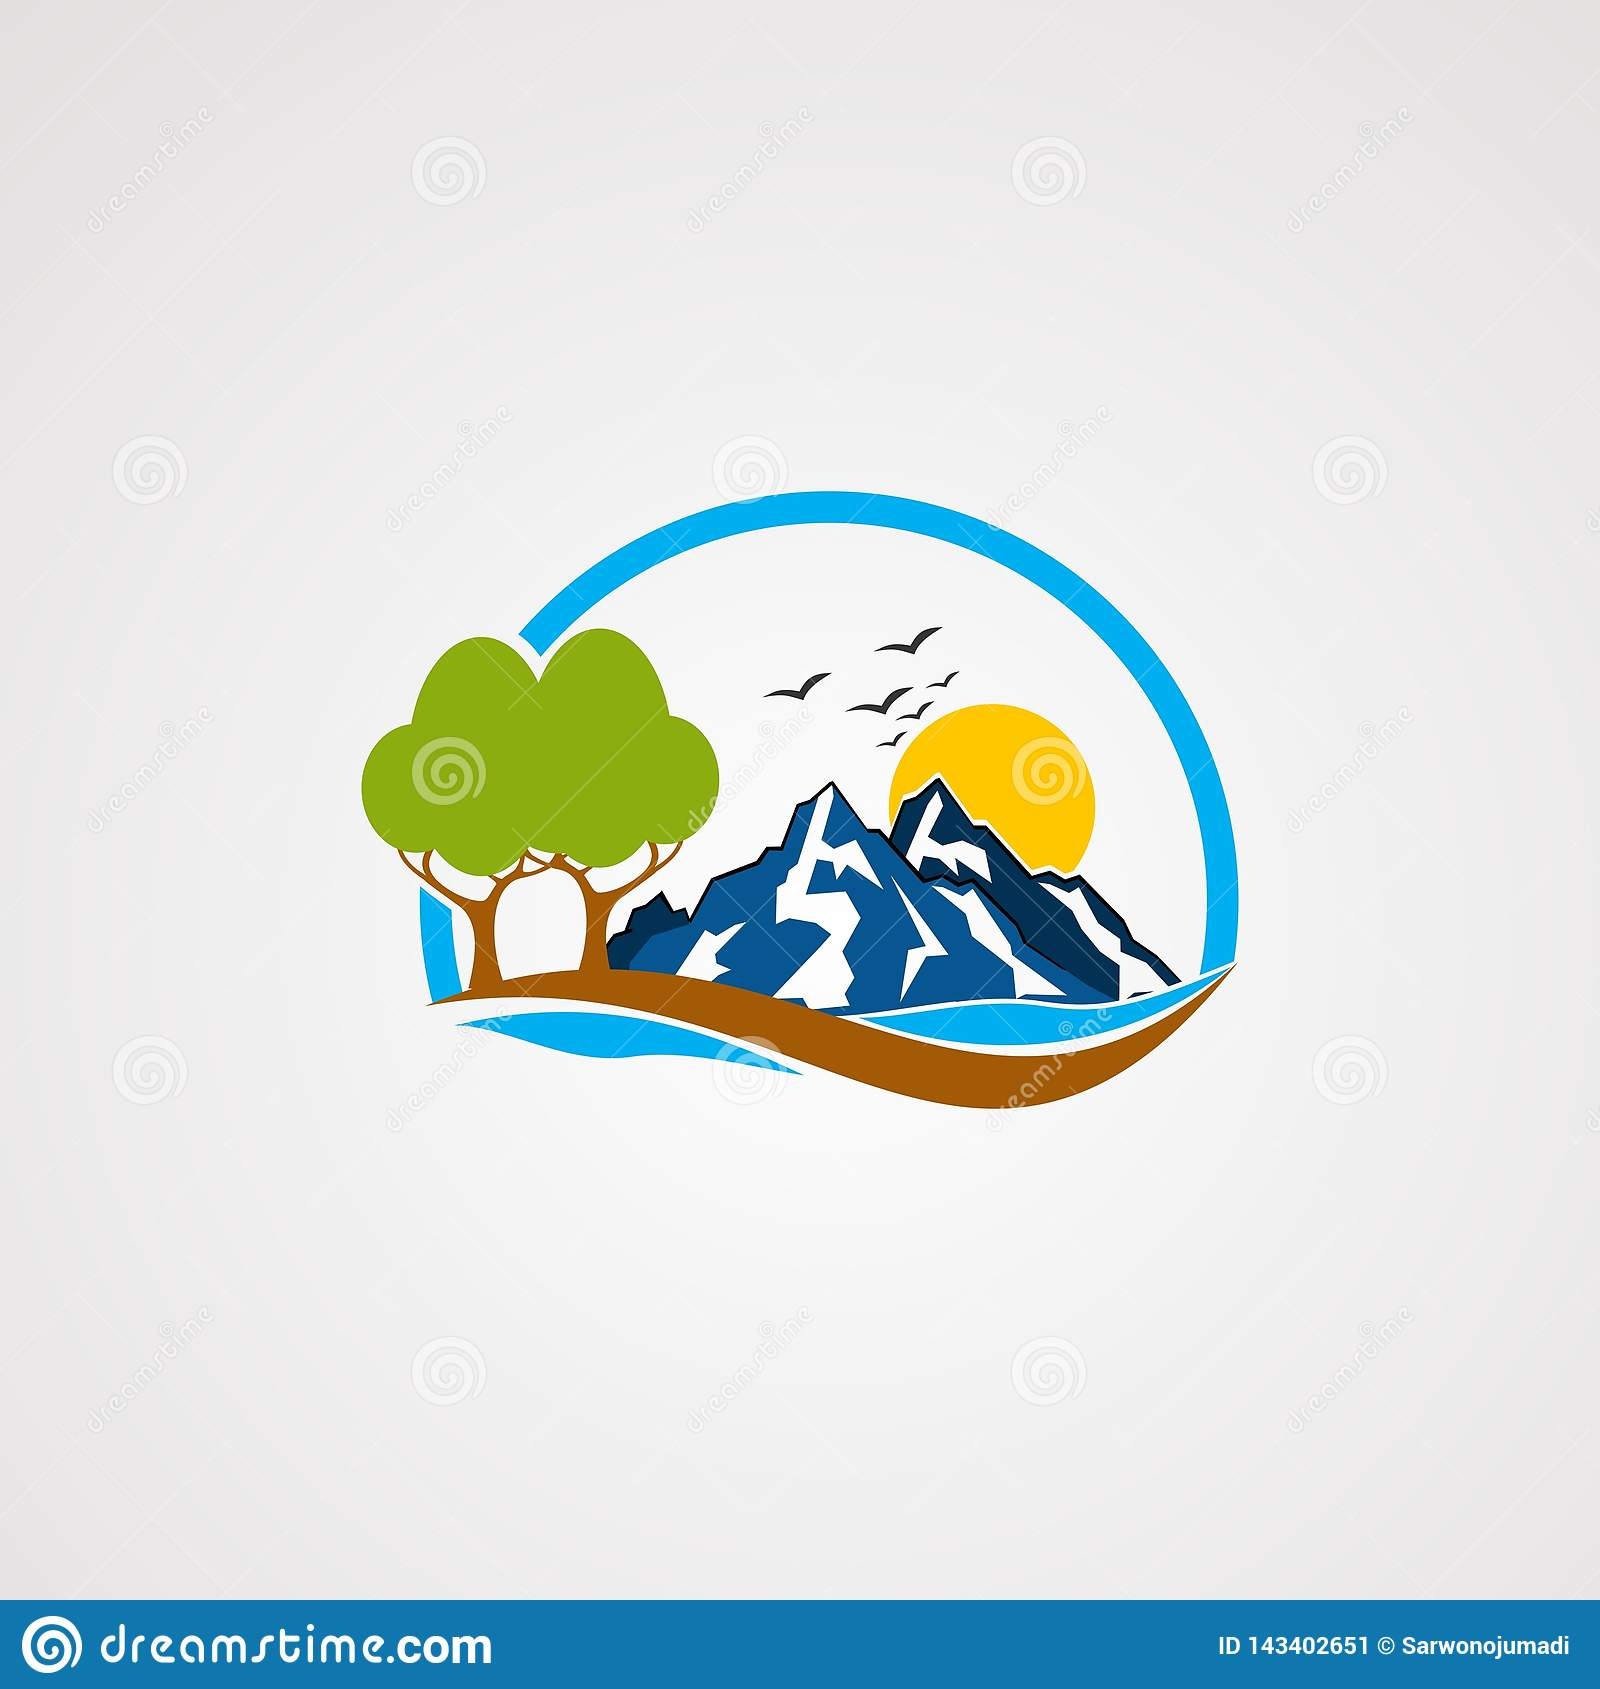 Rock mountain logo vector, icon, element, and template for company